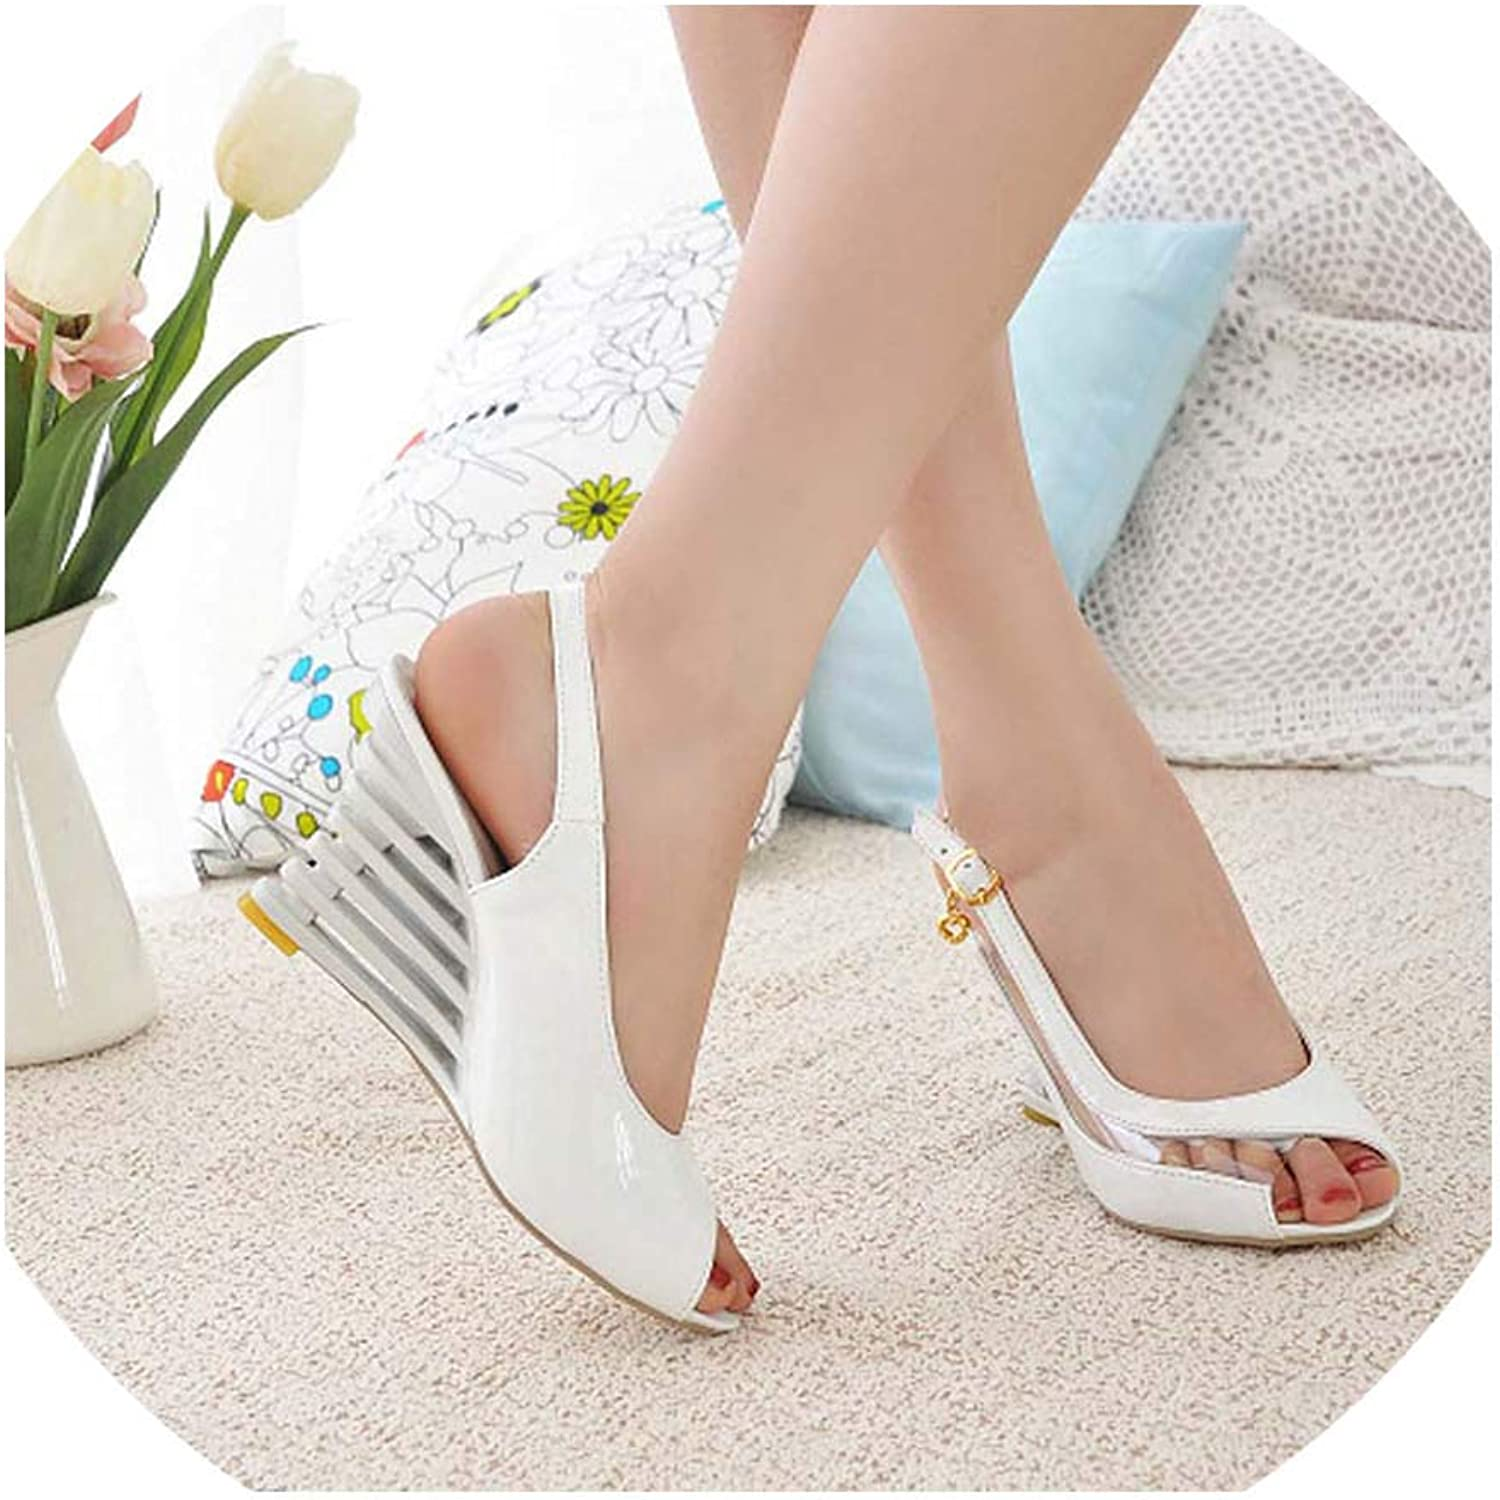 Pretty-sexy-toys Slope Heel Sandals Button Open Toe shoes Transparent Women's Summer shoes